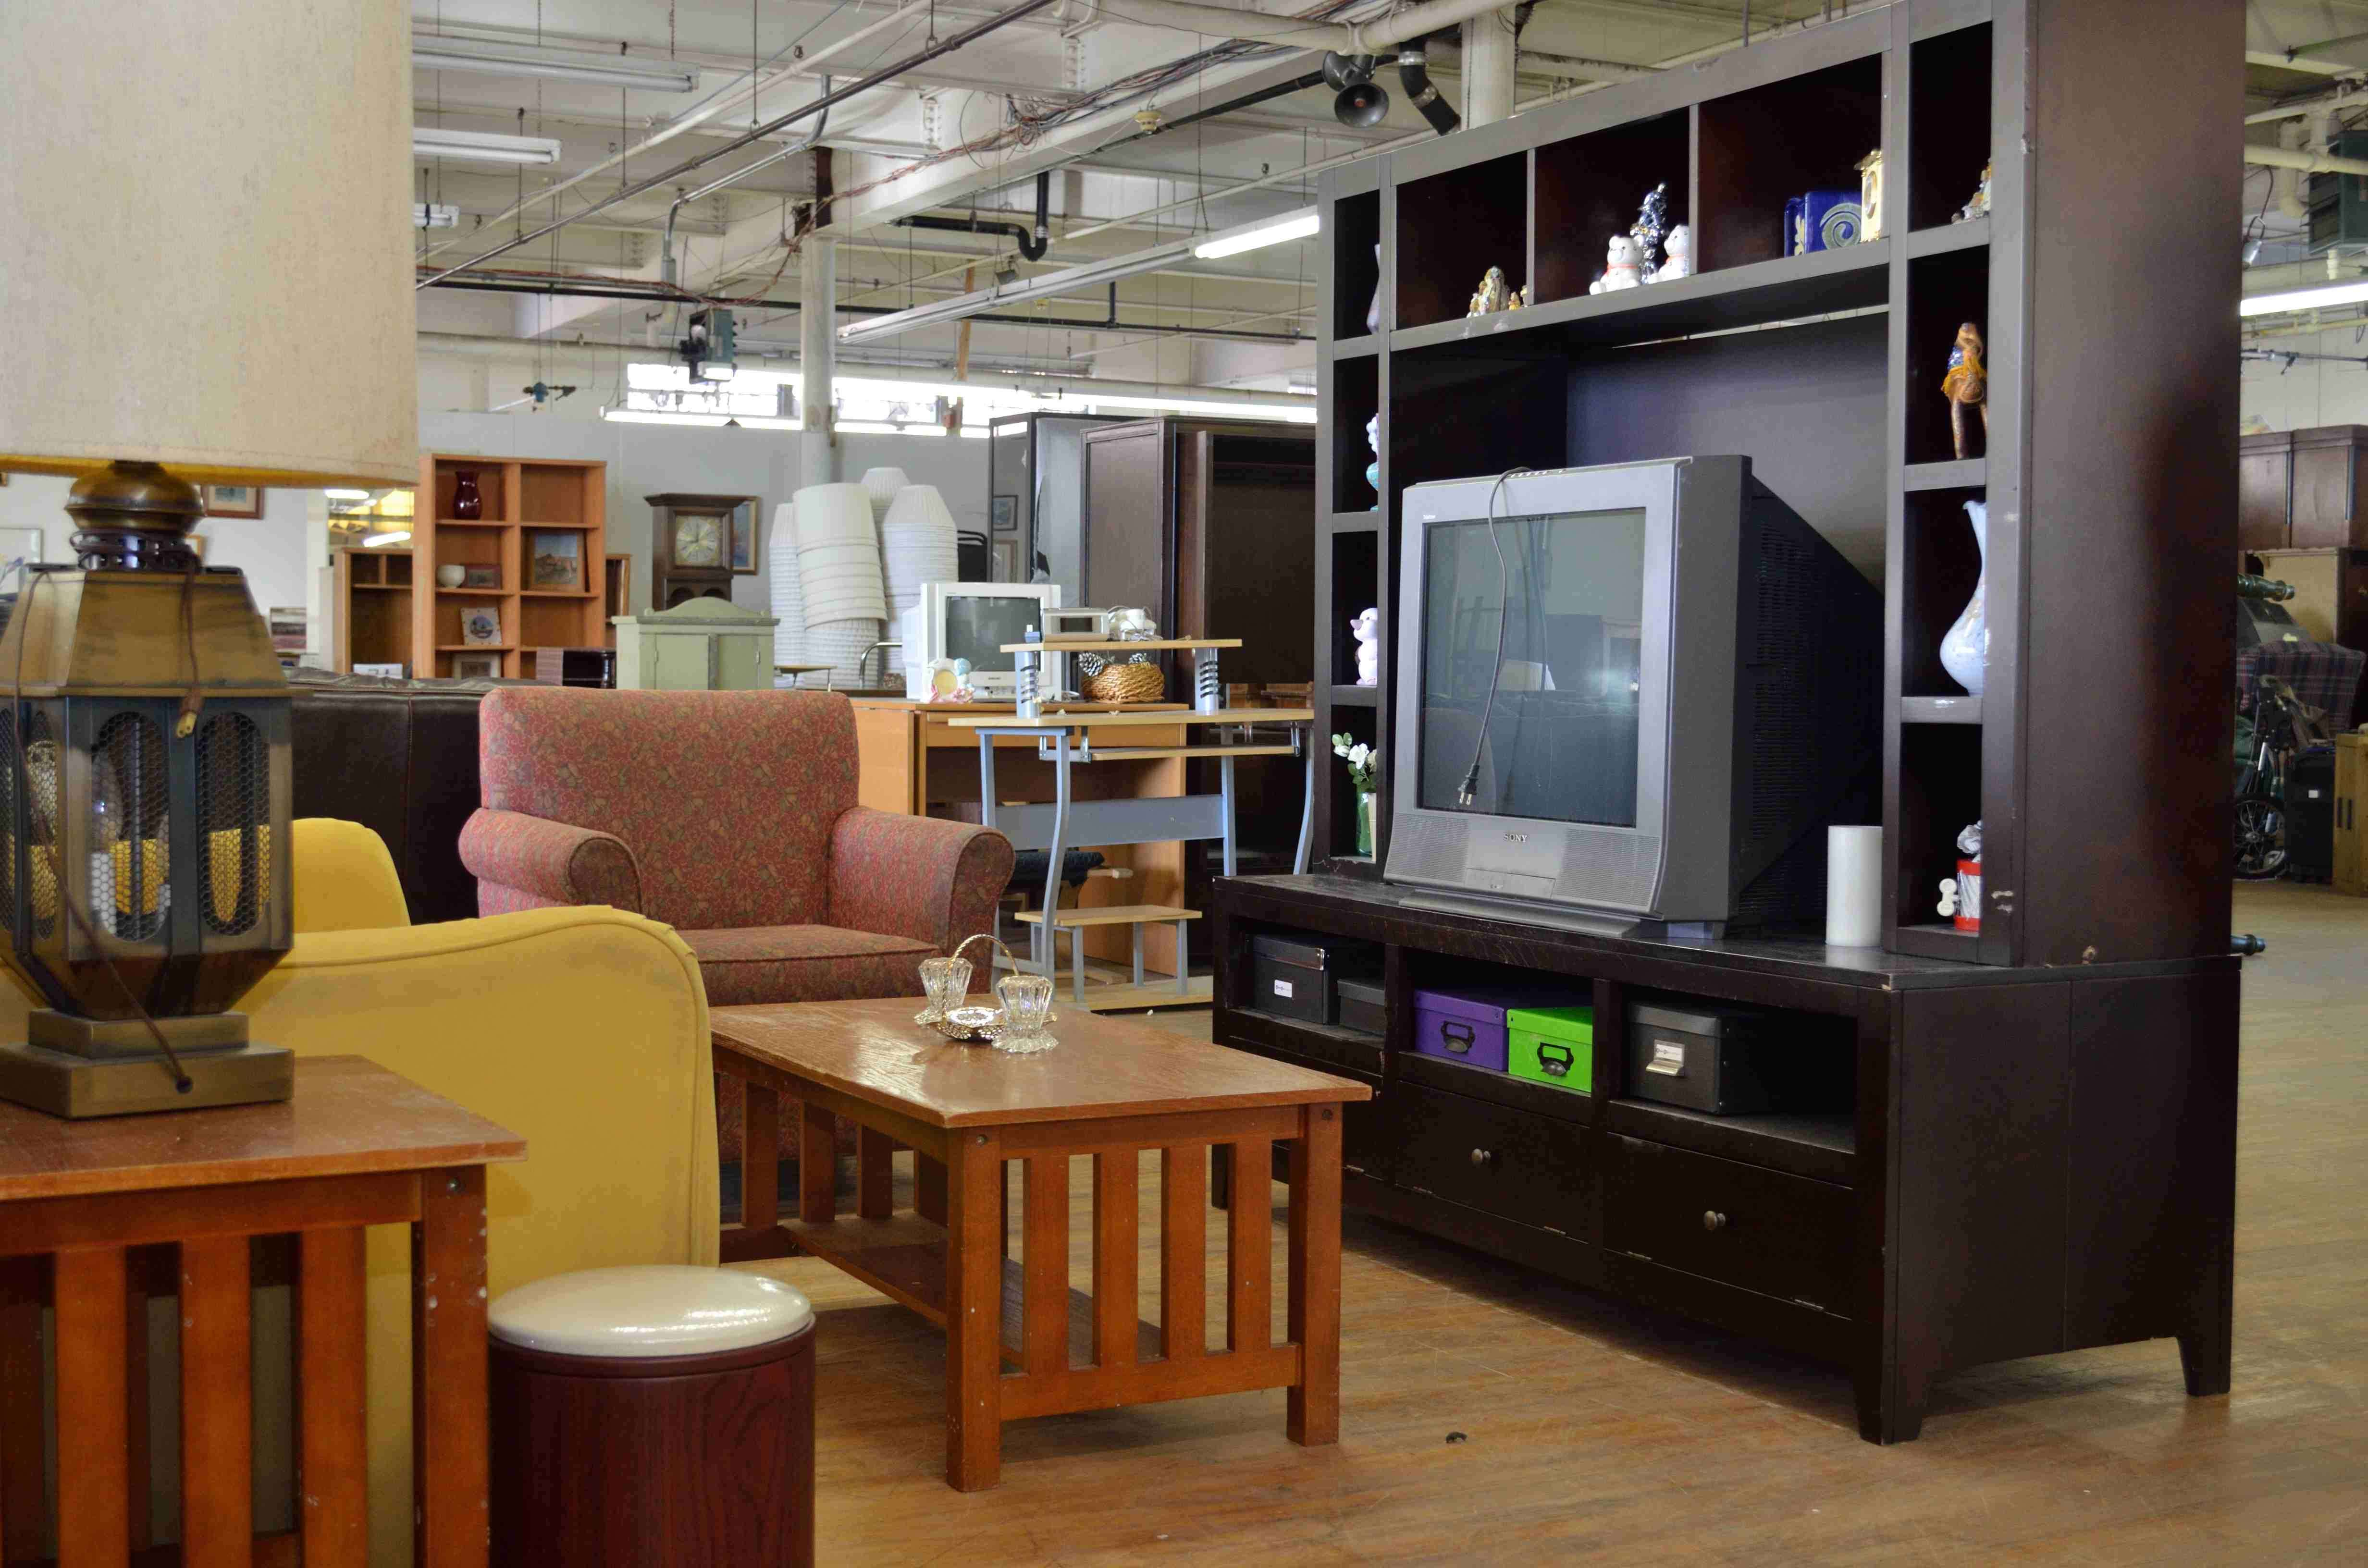 Mass Coalition For The Homeless Furniture Bank Celebrates 30 Years